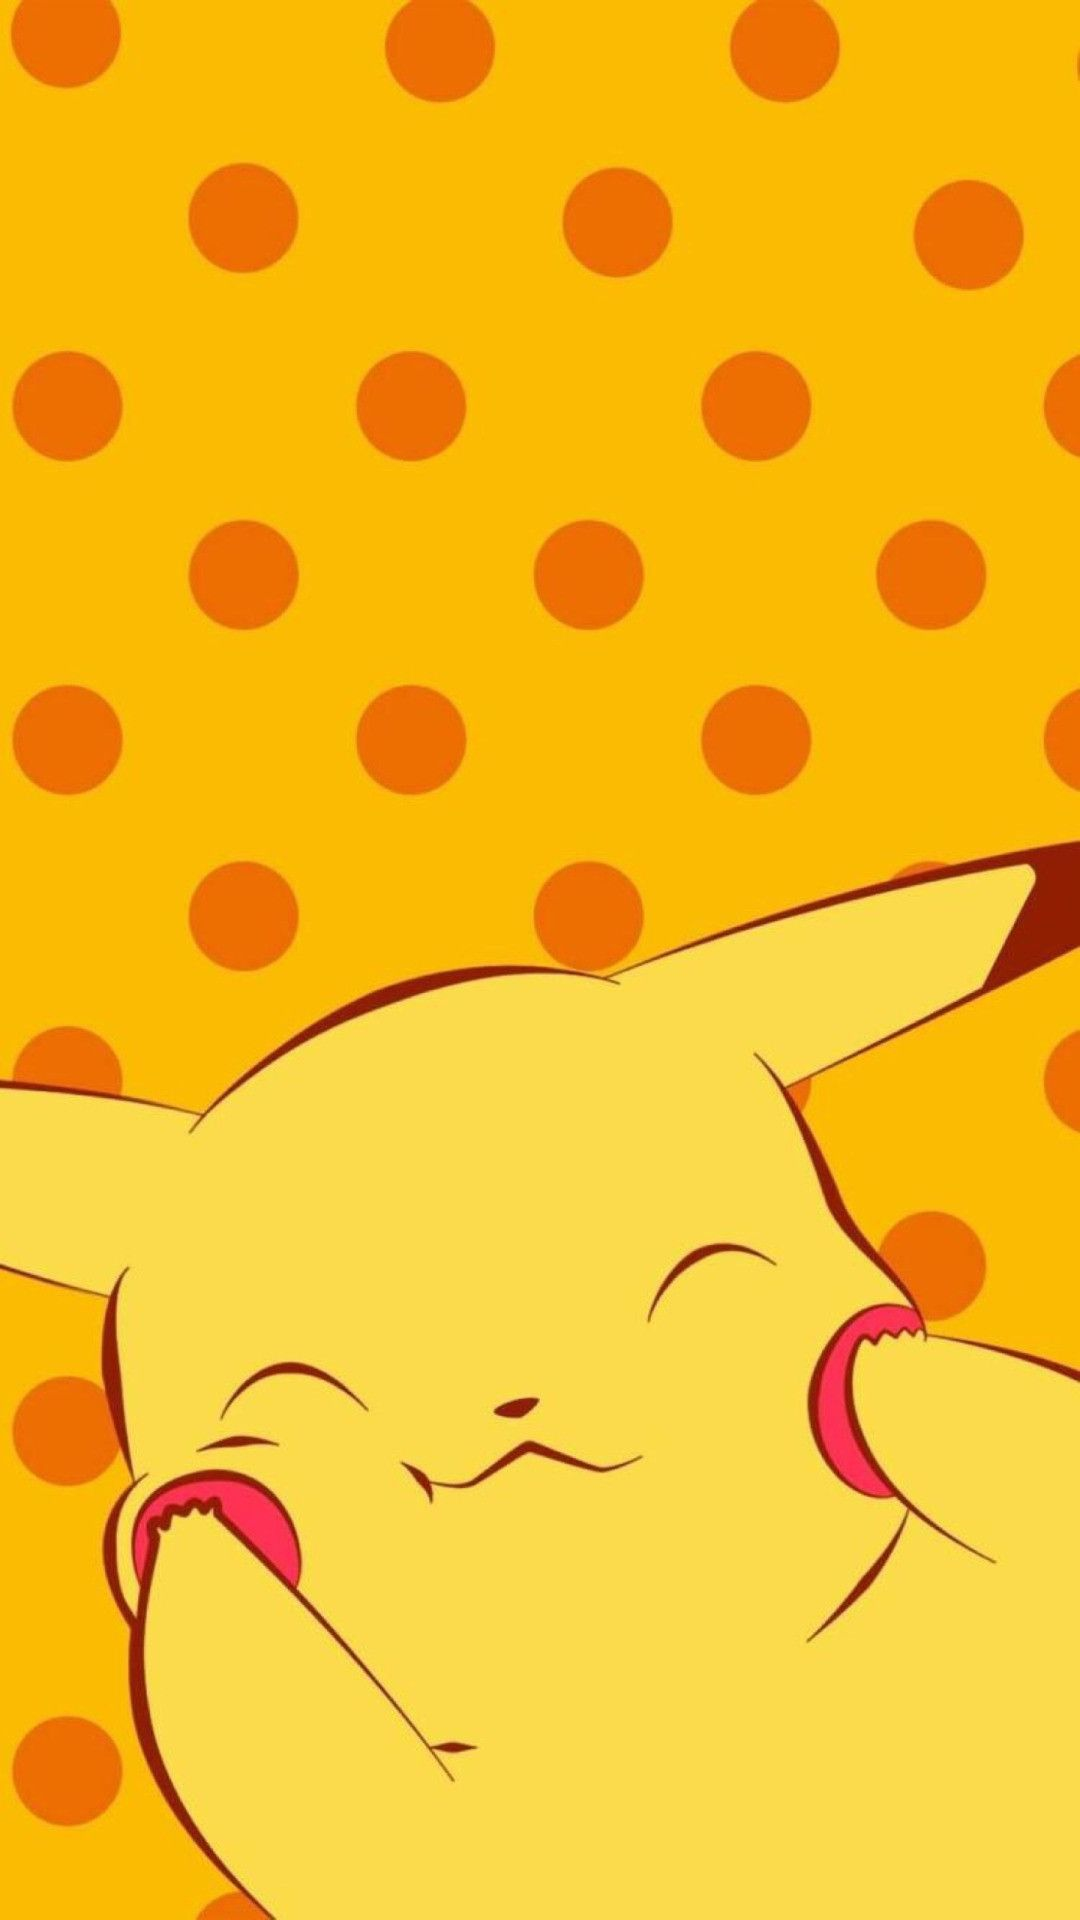 Cool Pokemon Iphone Wallpapers 68 Images Wallpaperboat